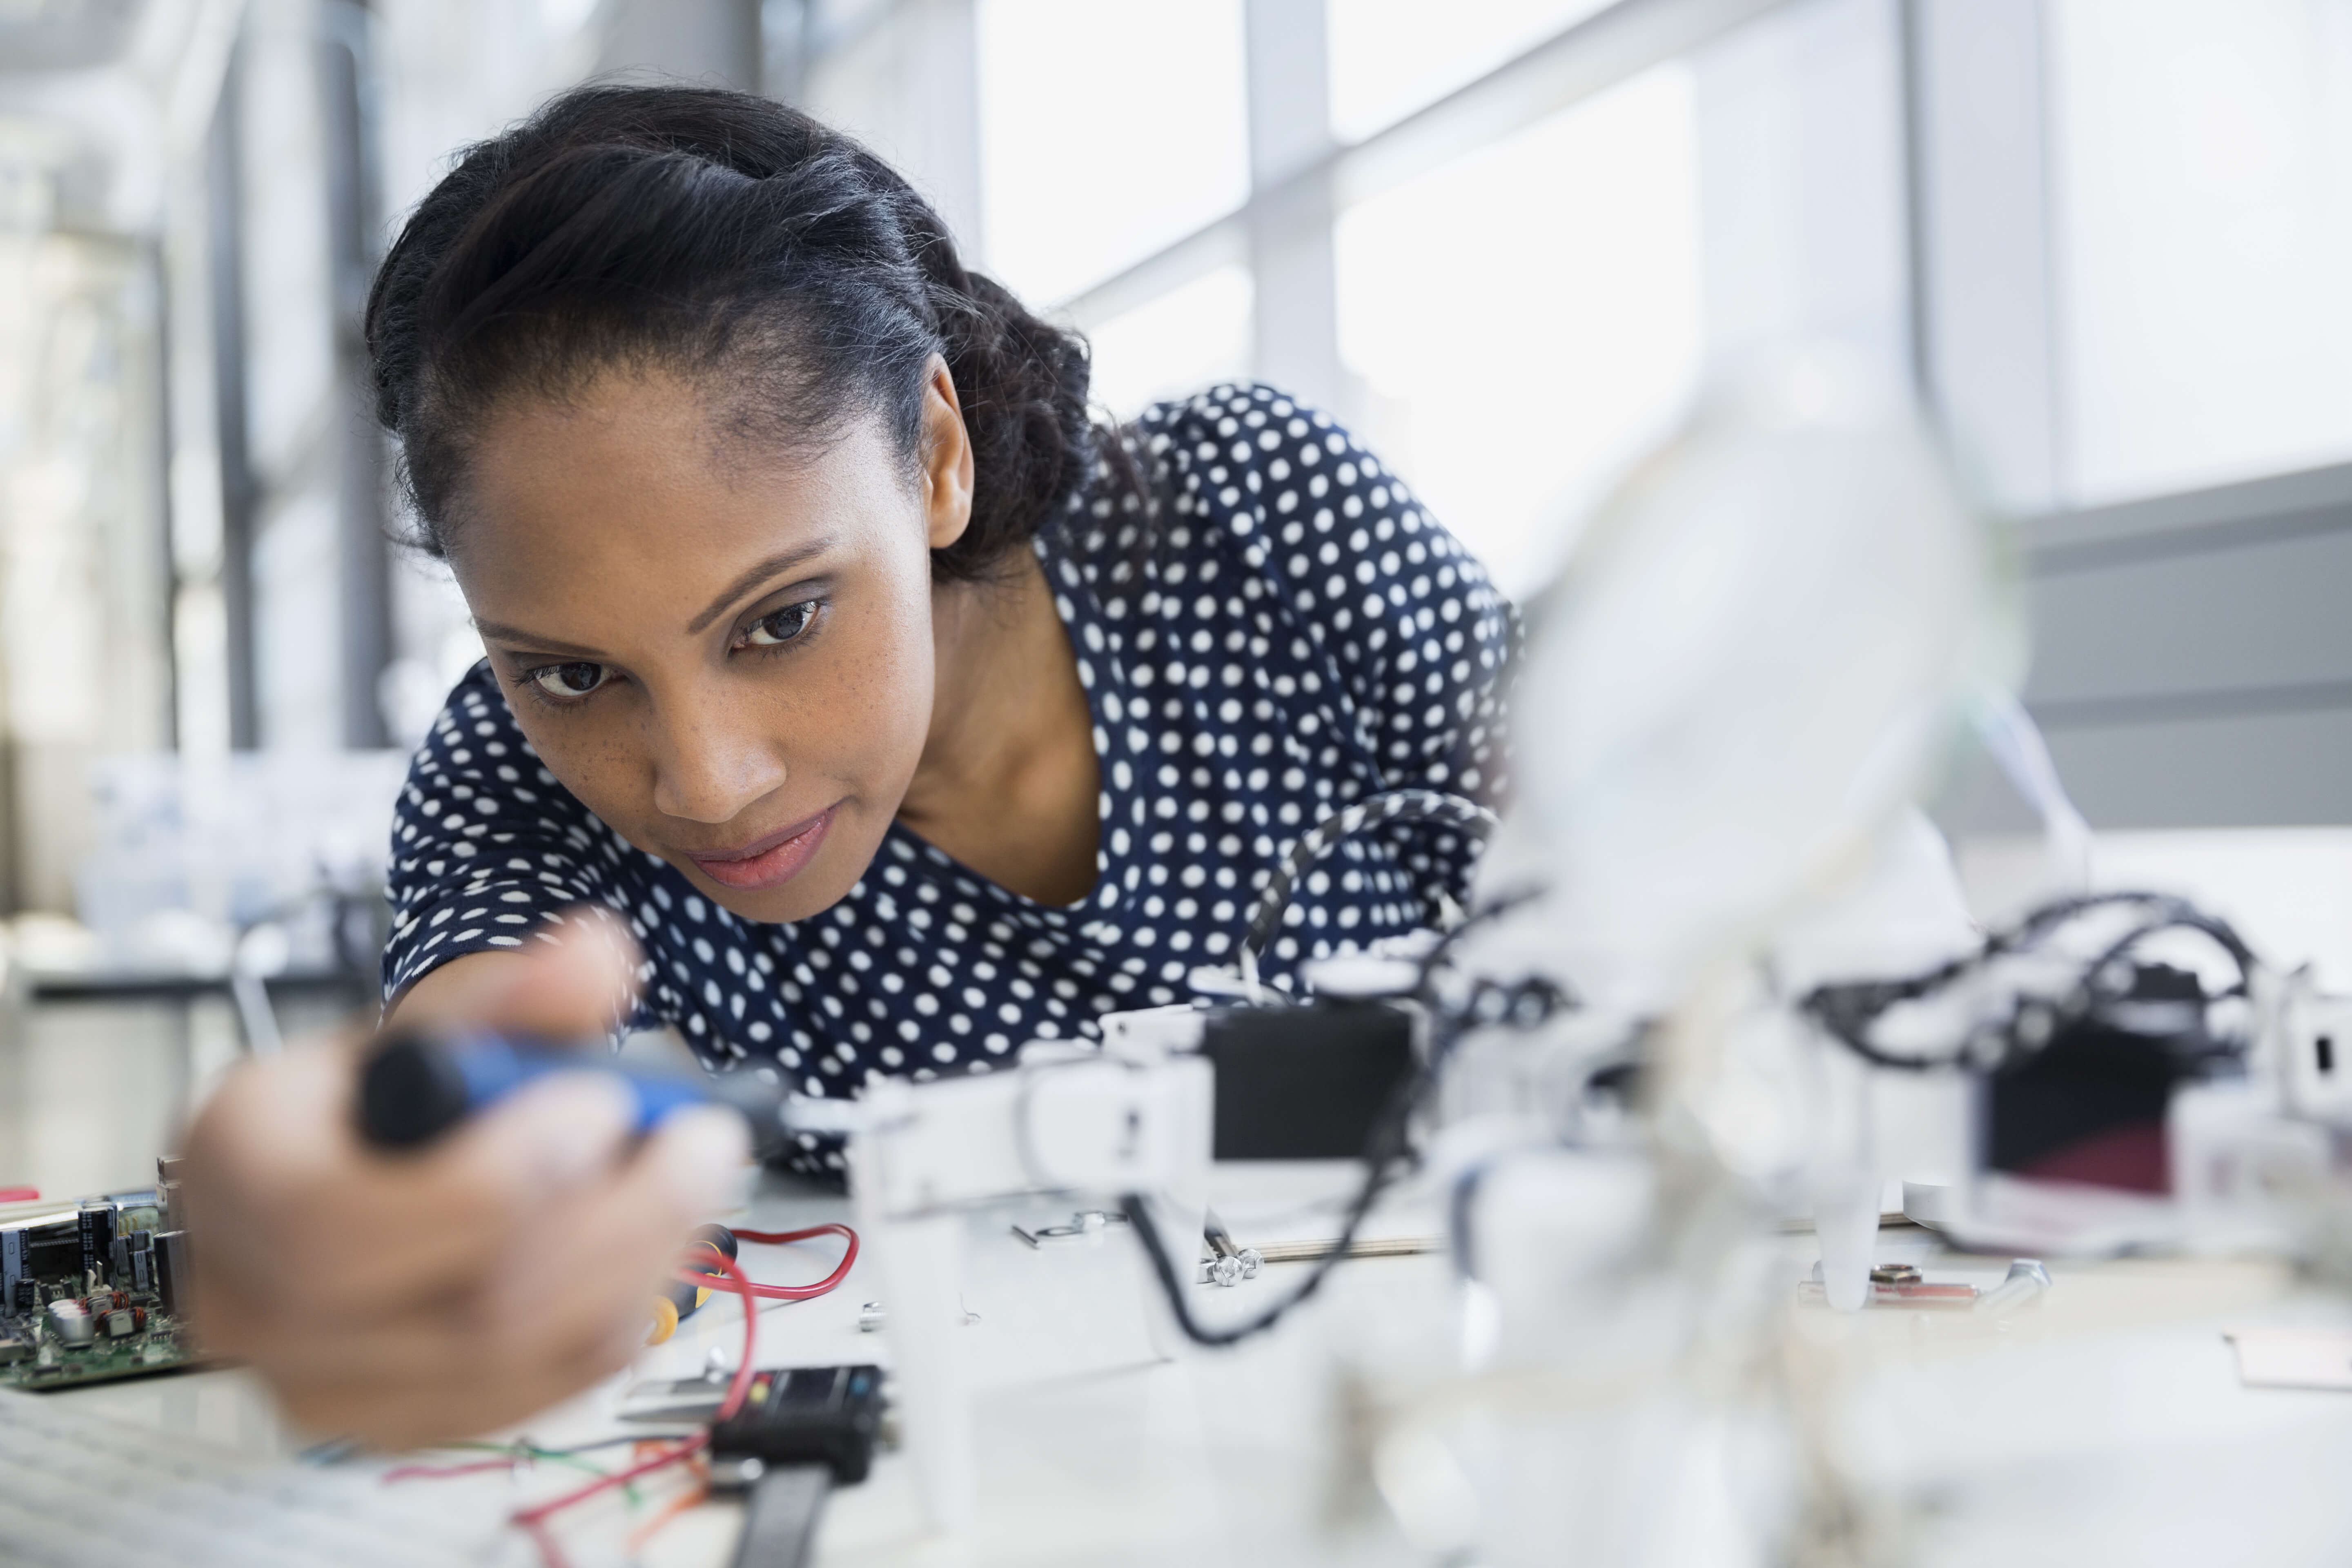 Image of a women working on a piece of machinery